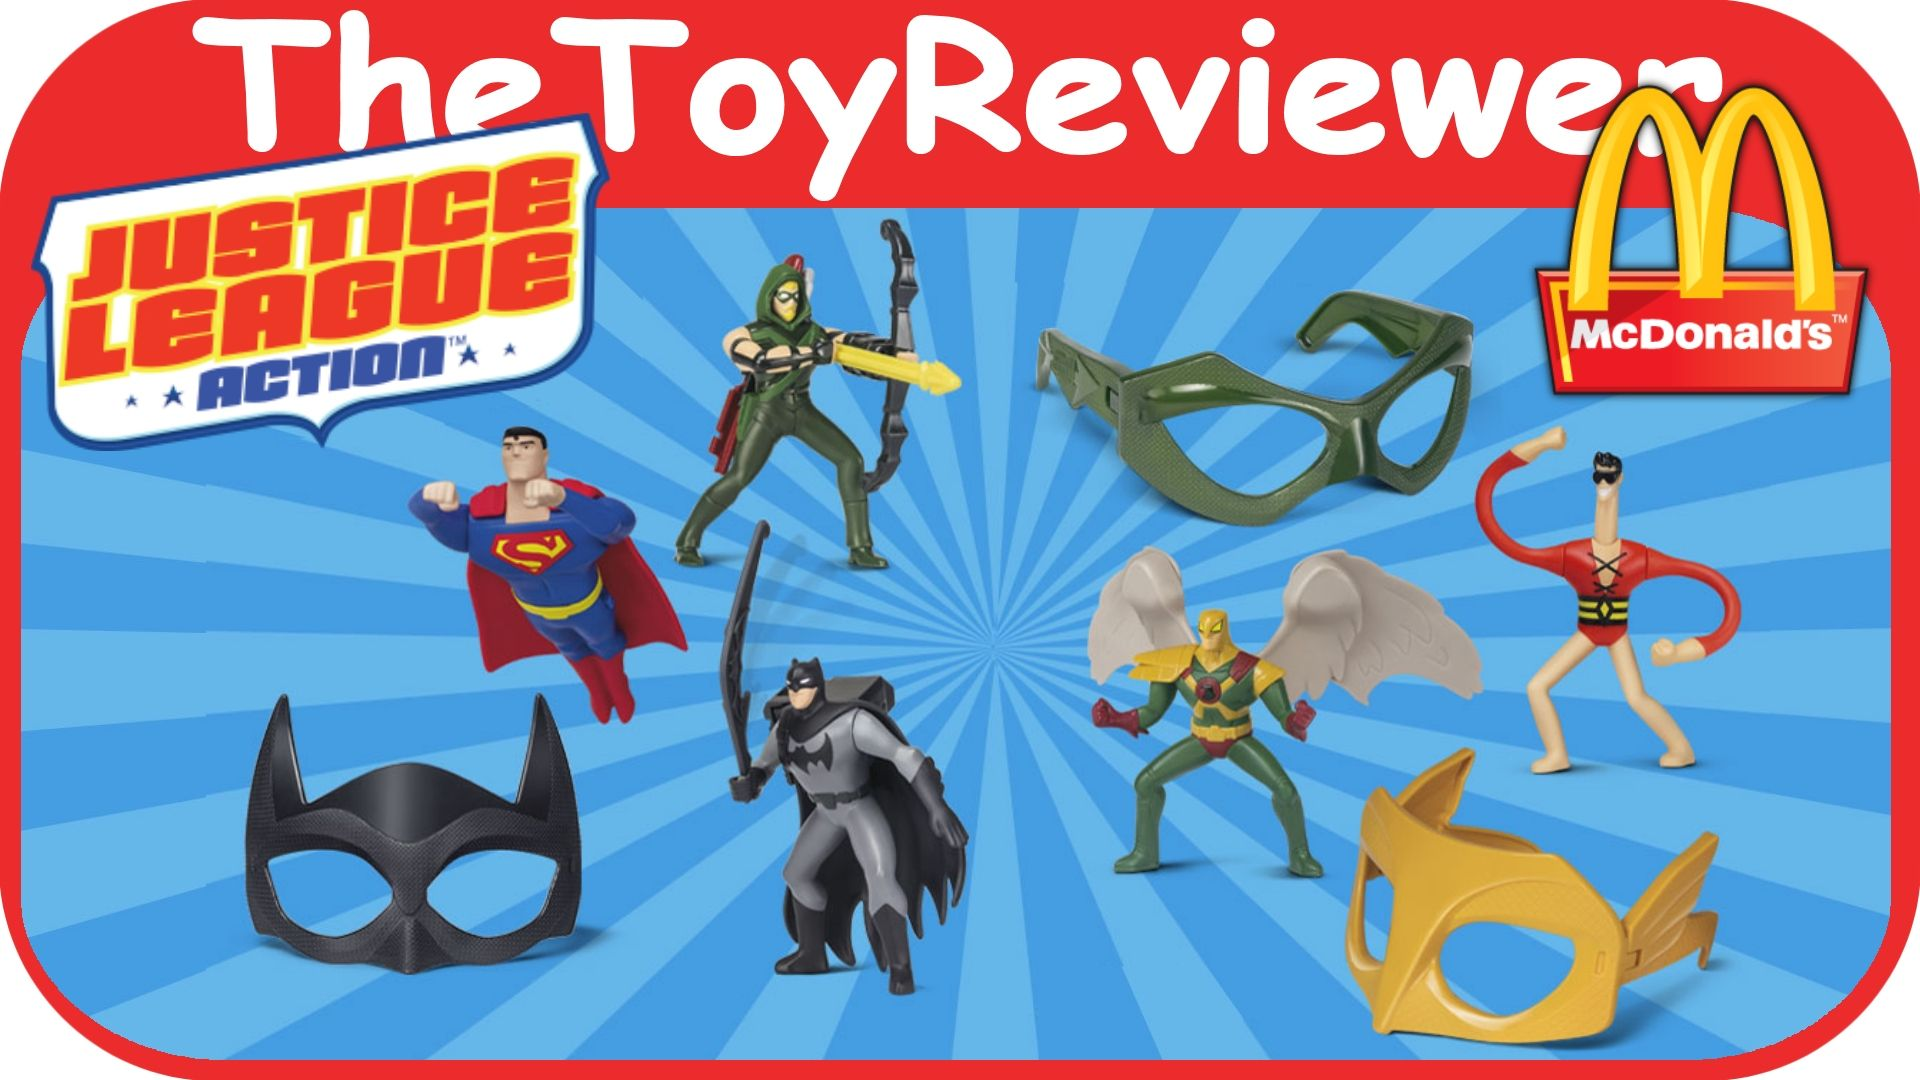 Pin By Thetoyreviewer On Thetoyreviewer Videos Happy Meal Toys Justice League Happy Meal Mcdonalds